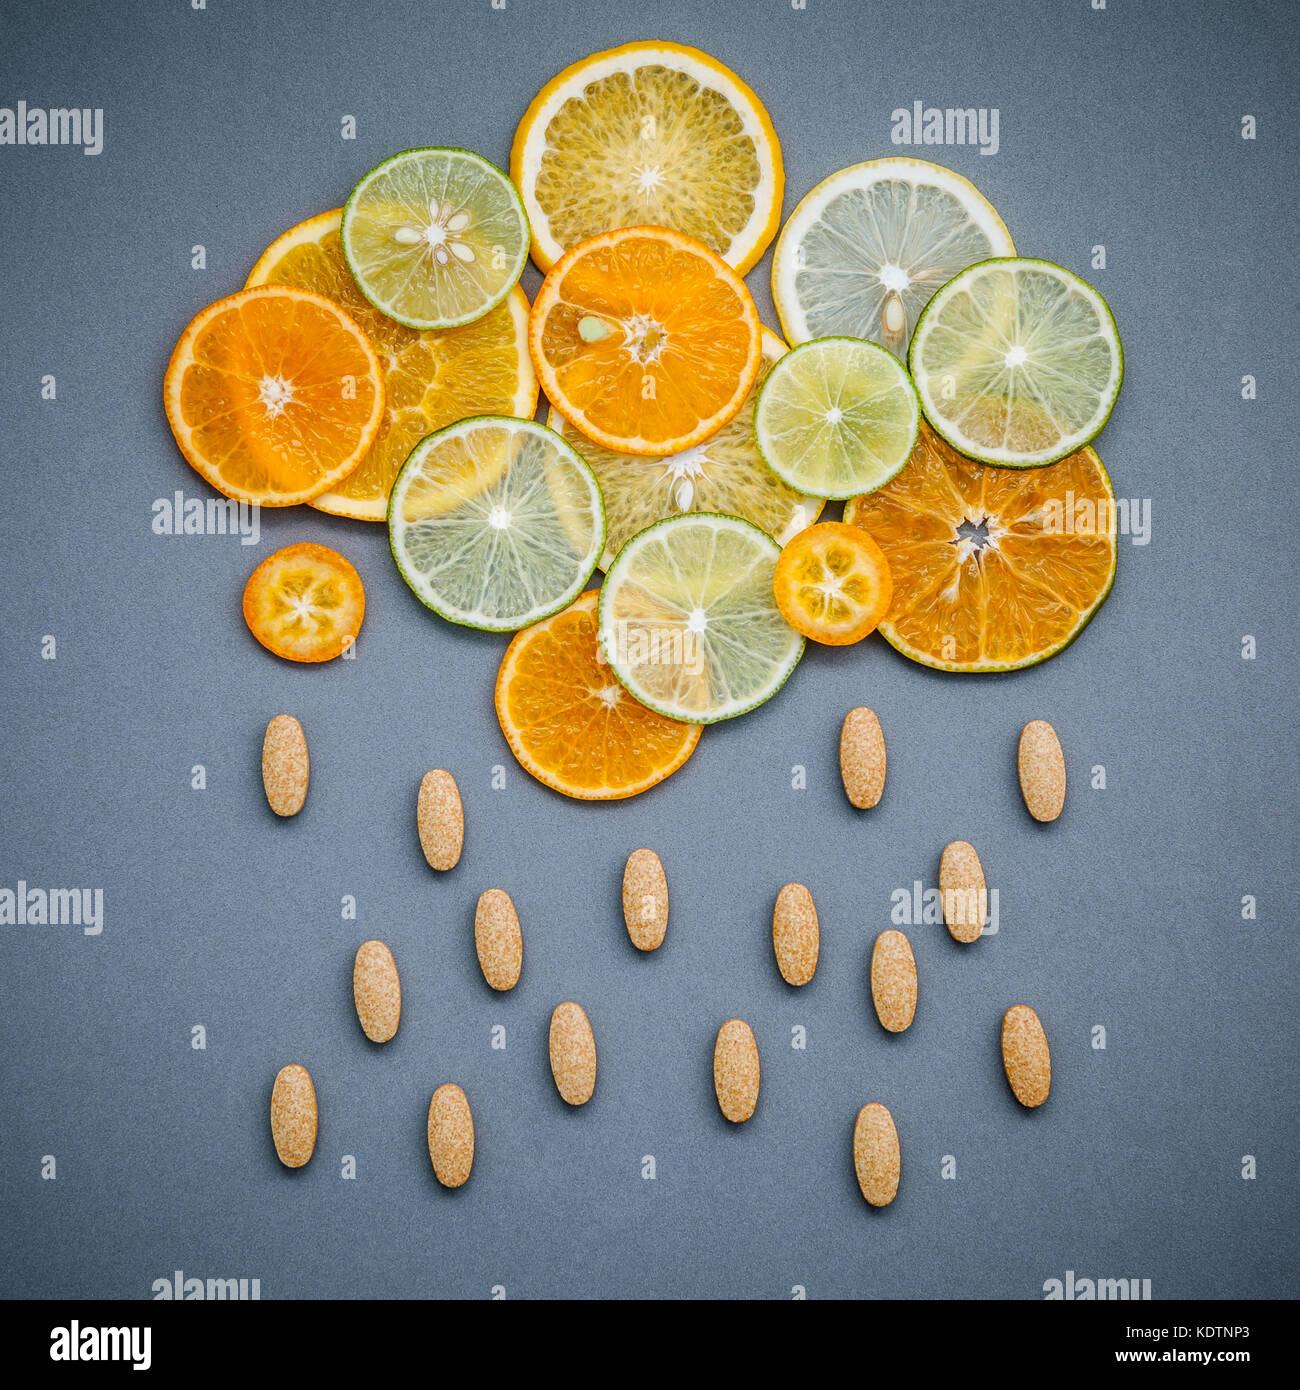 Healthy foods and medicine concept. Pills of vitamin C and citrus fruits in the shape of cloud and raining. Citrus - Stock Image